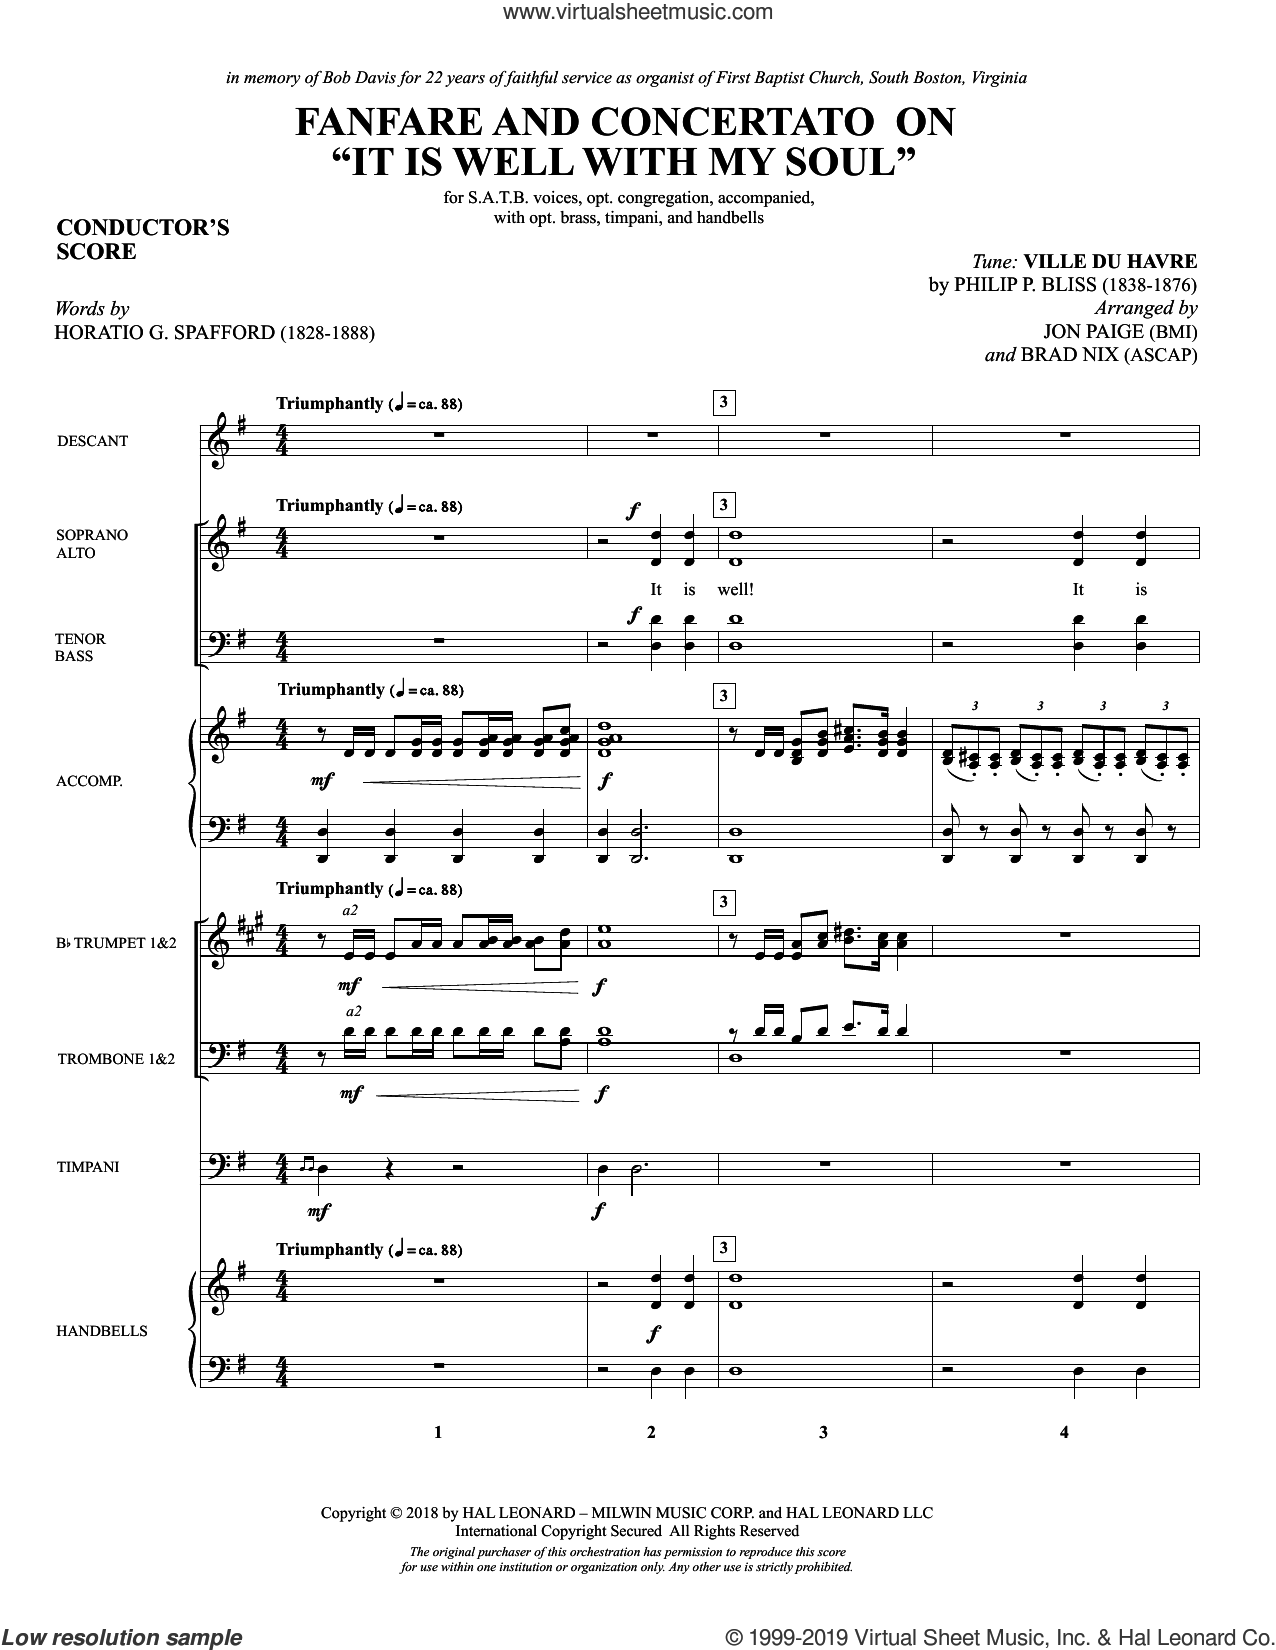 Fanfare and Concertato on 'It Is Well with My Soul' (Brass and Timpani) (COMPLETE) sheet music for orchestra/band by Philip P. Bliss, Horatio Spafford and Jon Paige & Brad Nix, intermediate skill level